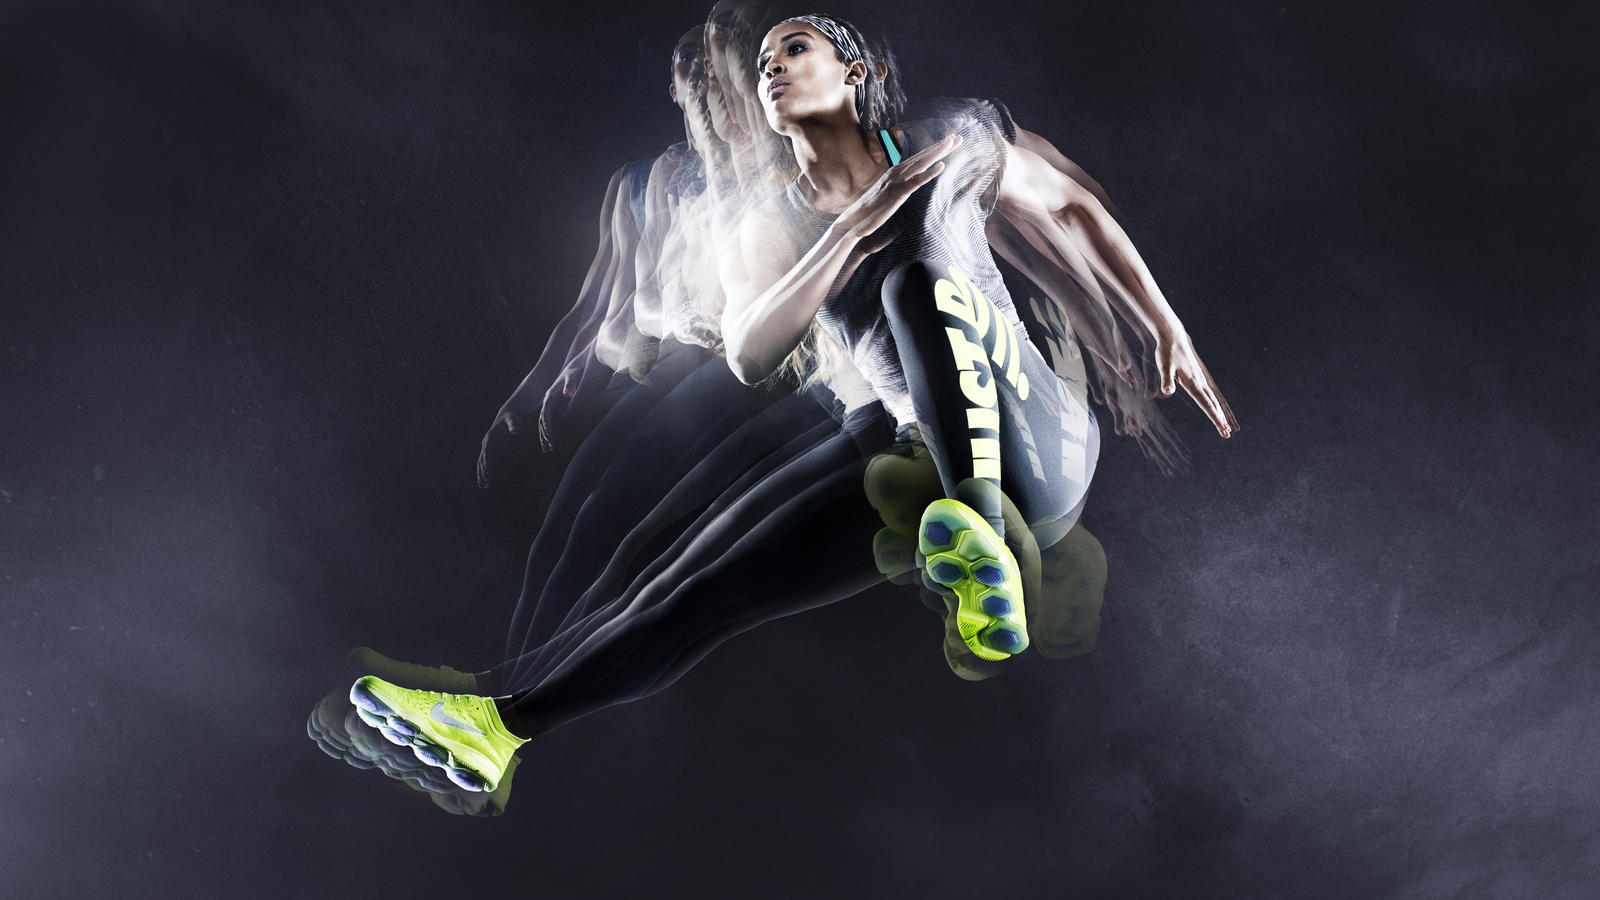 Girl Motivation Wallpaper Nike News Zoom Reimagined The Nike Zoom Fit Agility